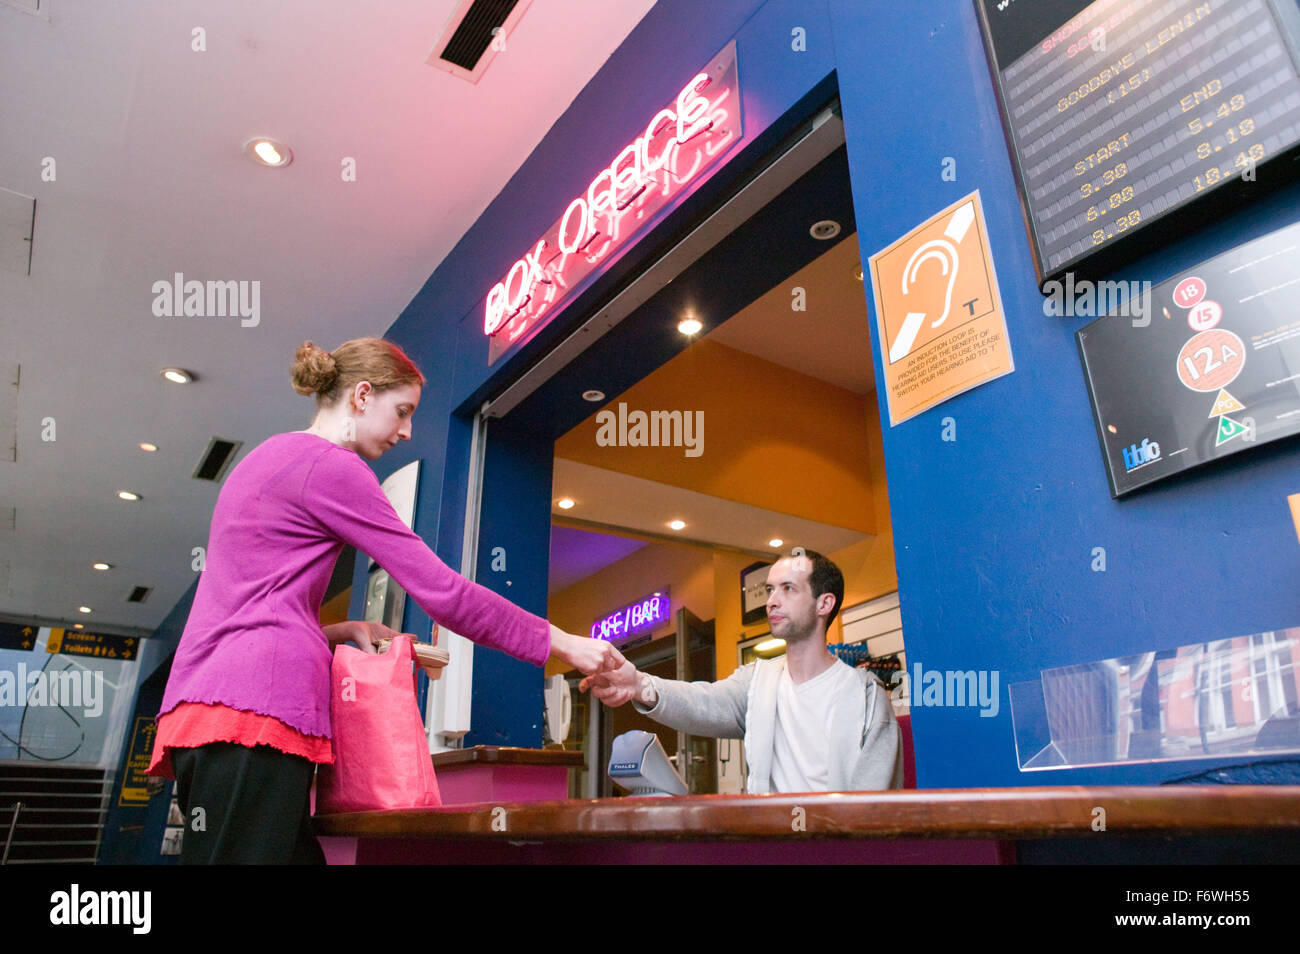 Young woman buying a ticket to see a film at a cinema, A sign shows that an induction loop is available for people - Stock Image